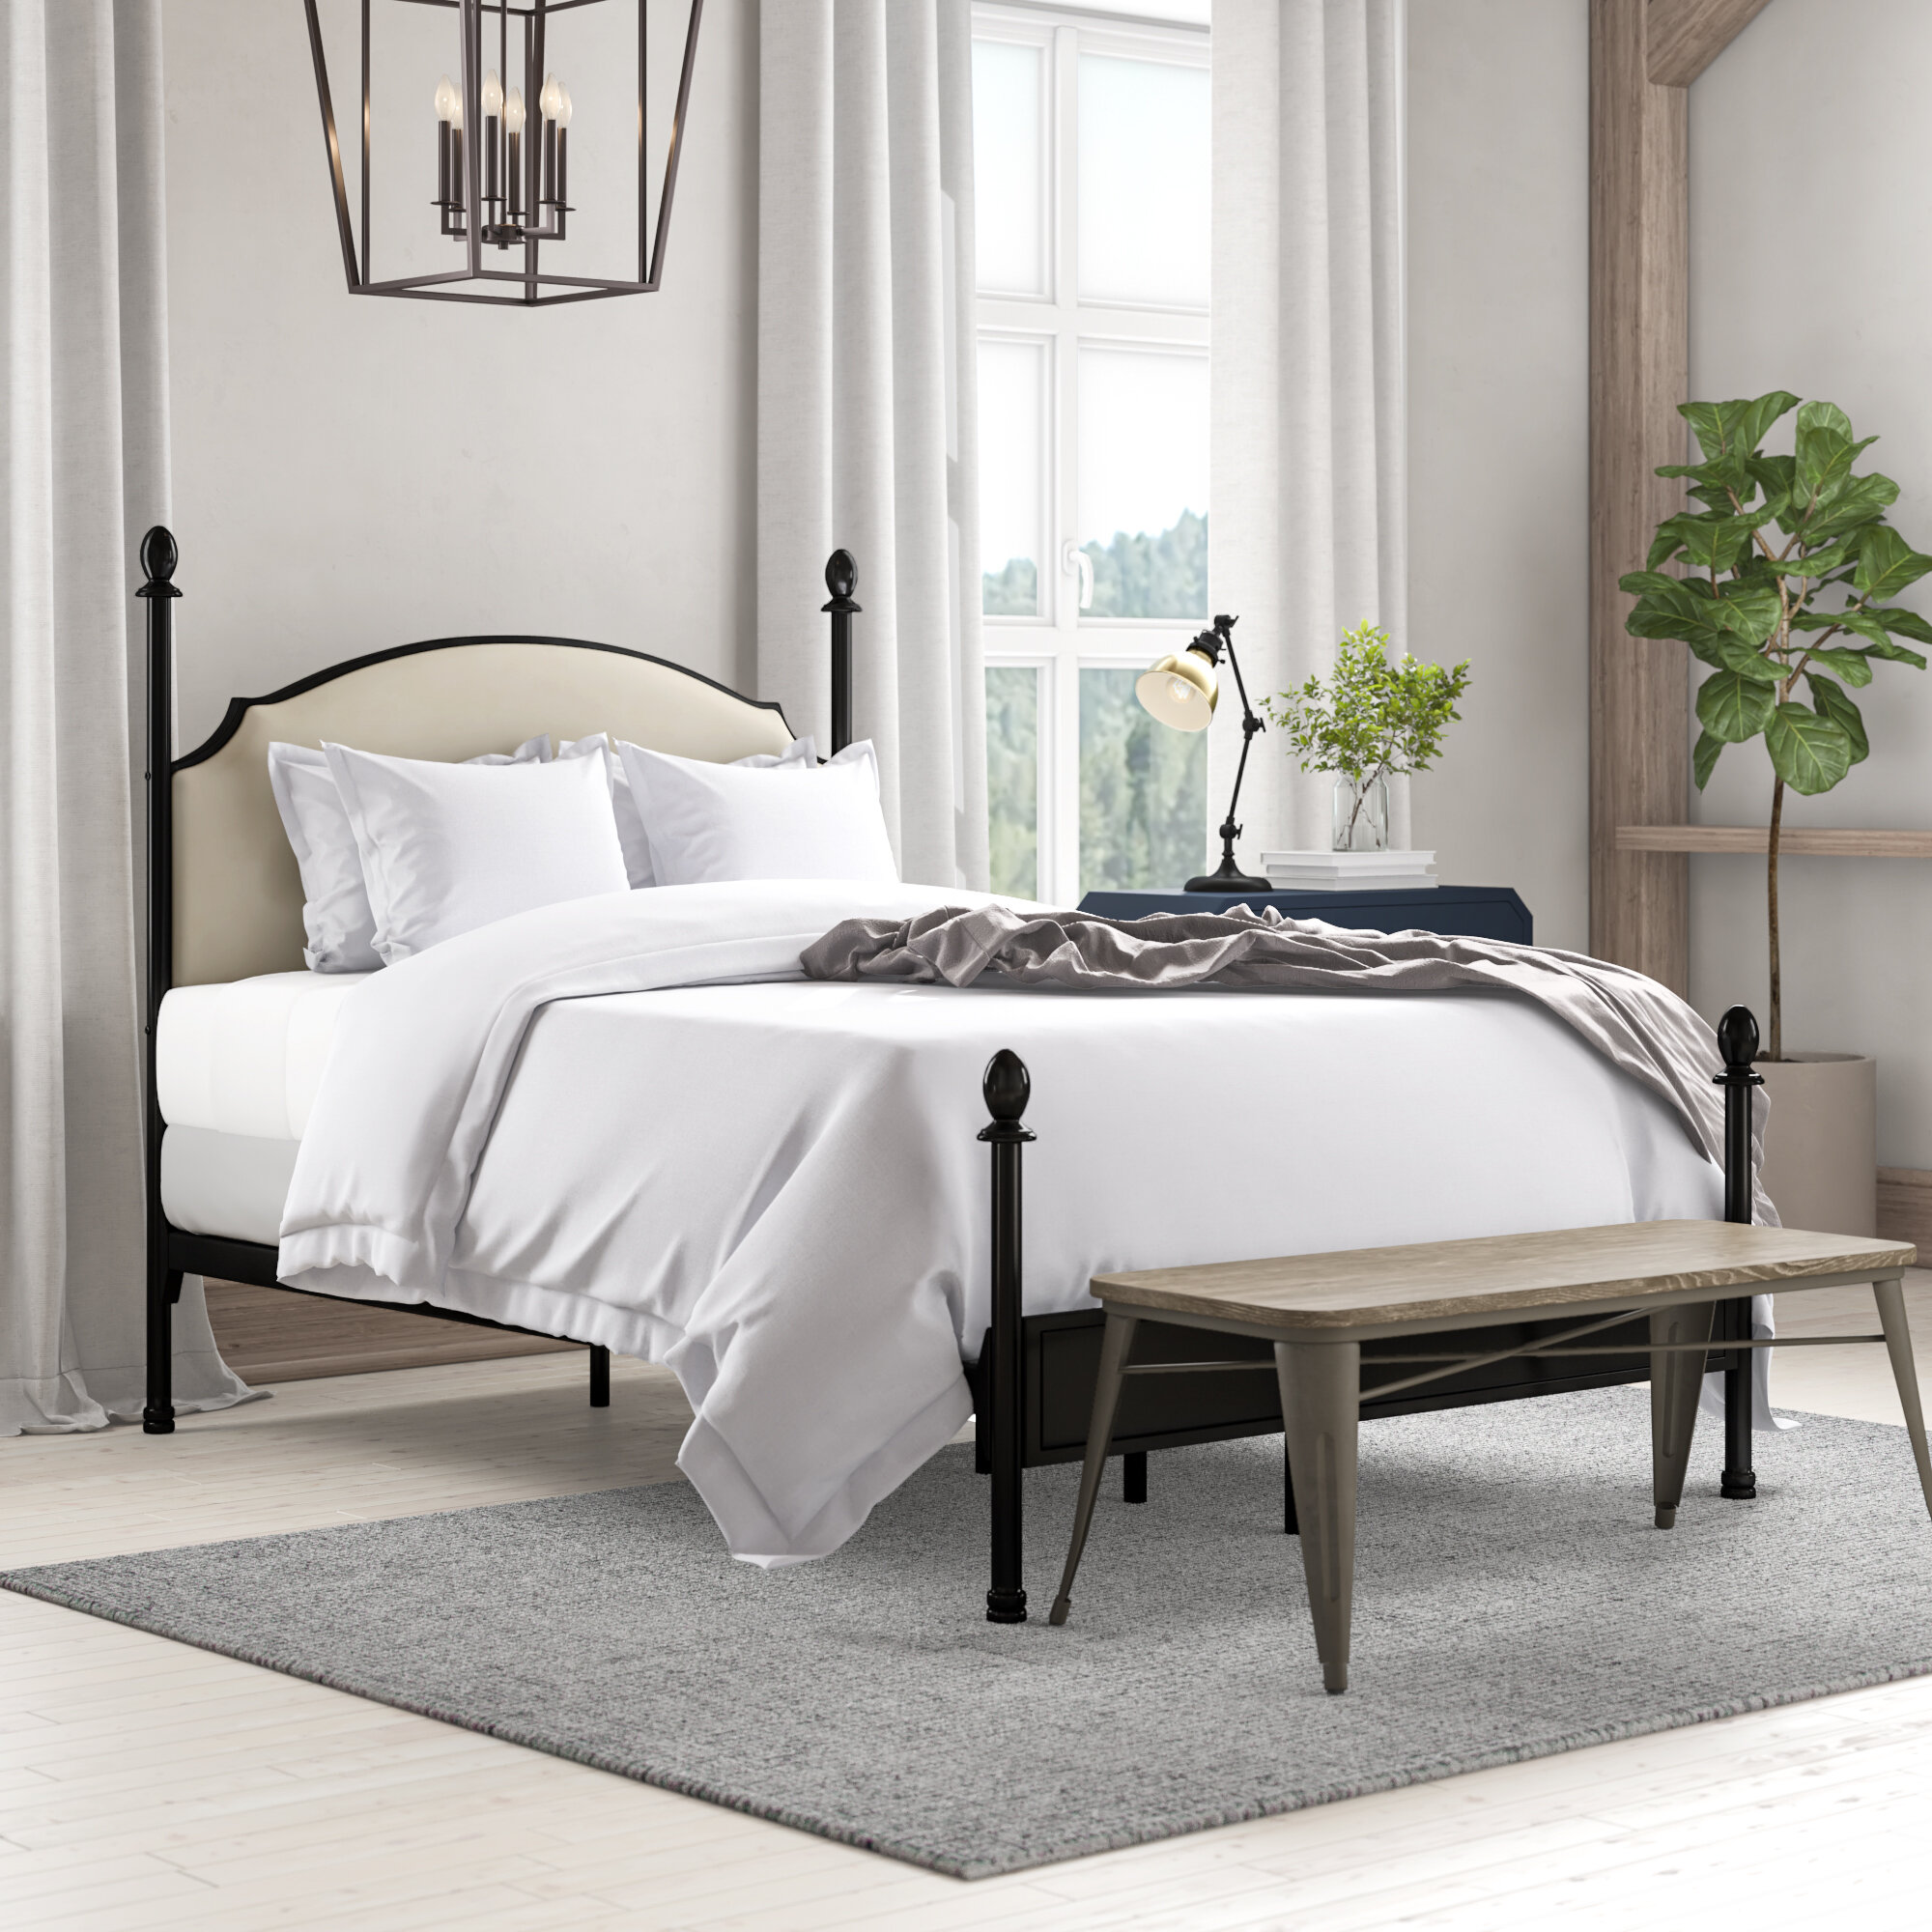 Wayfair Four Poster Beds You Ll Love In 2021